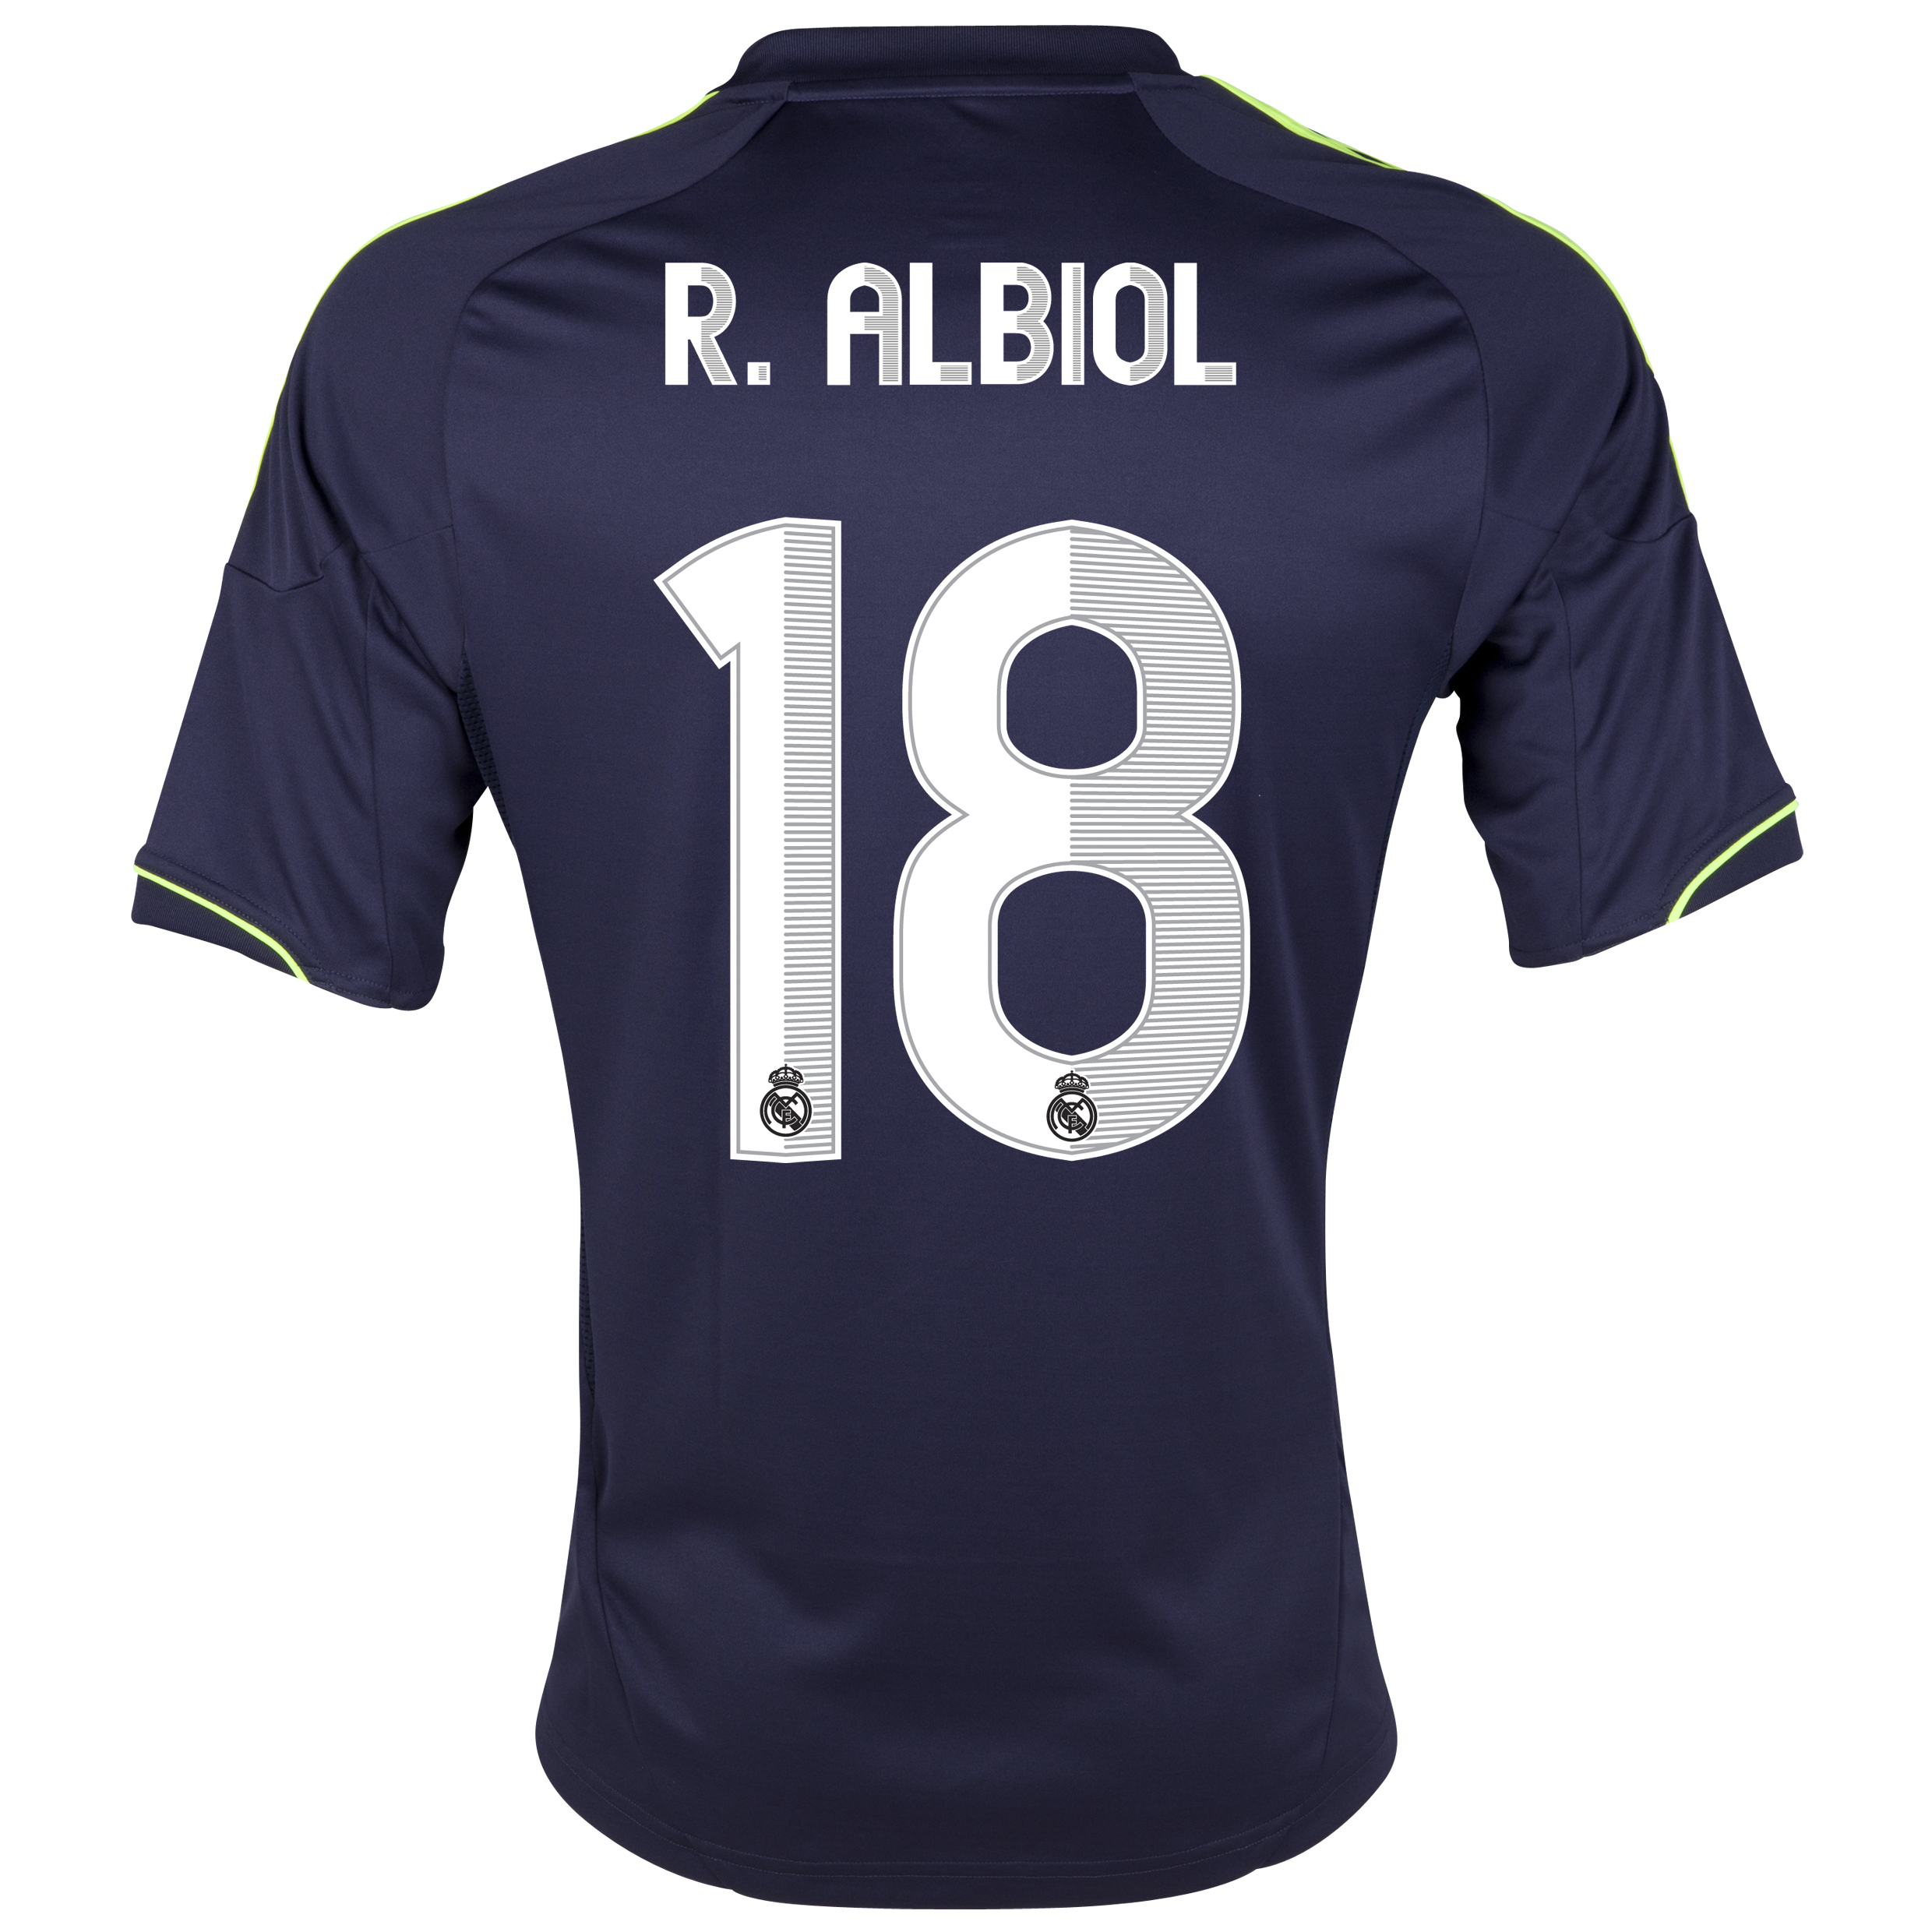 Camiseta visitante Real Madrid 2012/13 con impresin 18 R.Albiol - Joven